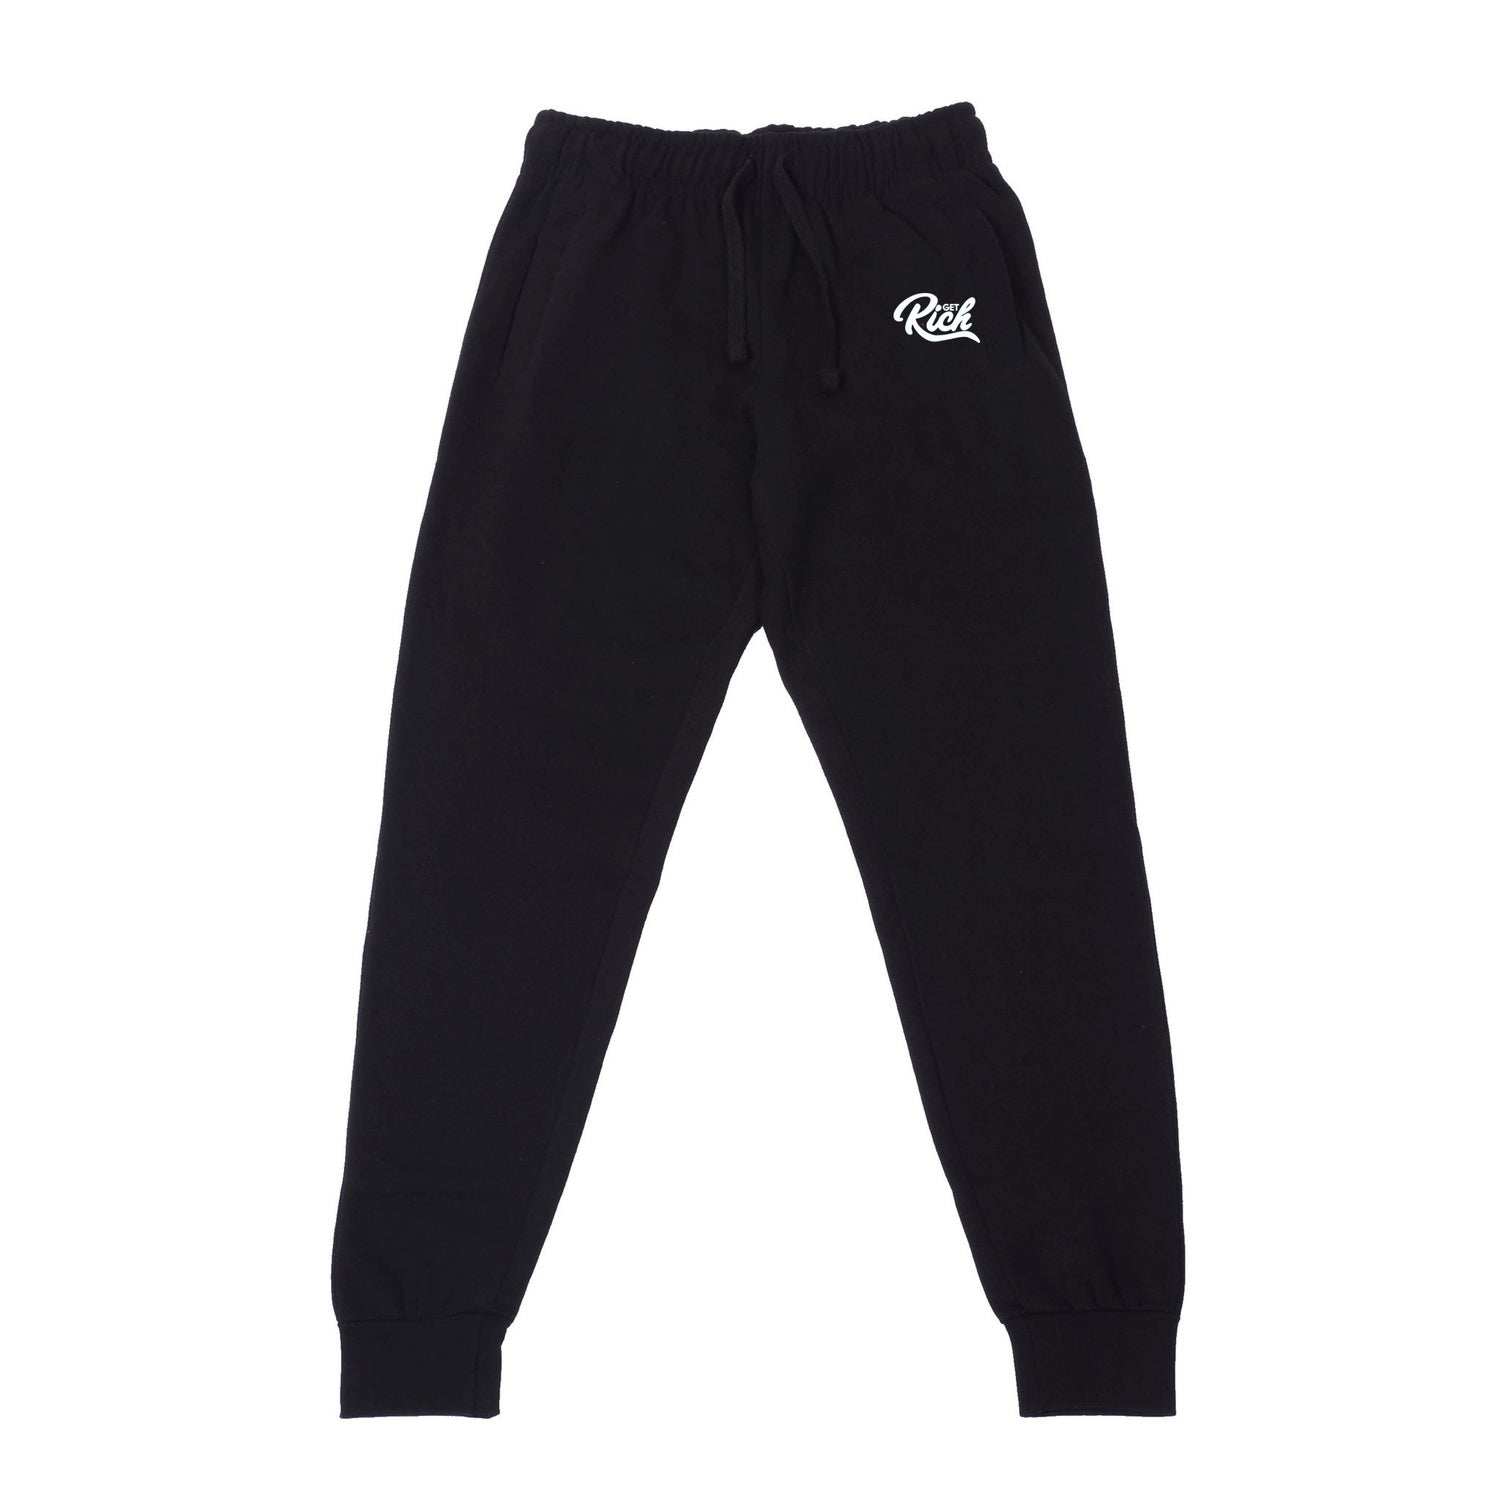 Image of Get Rich Sweatsuit Set - Black